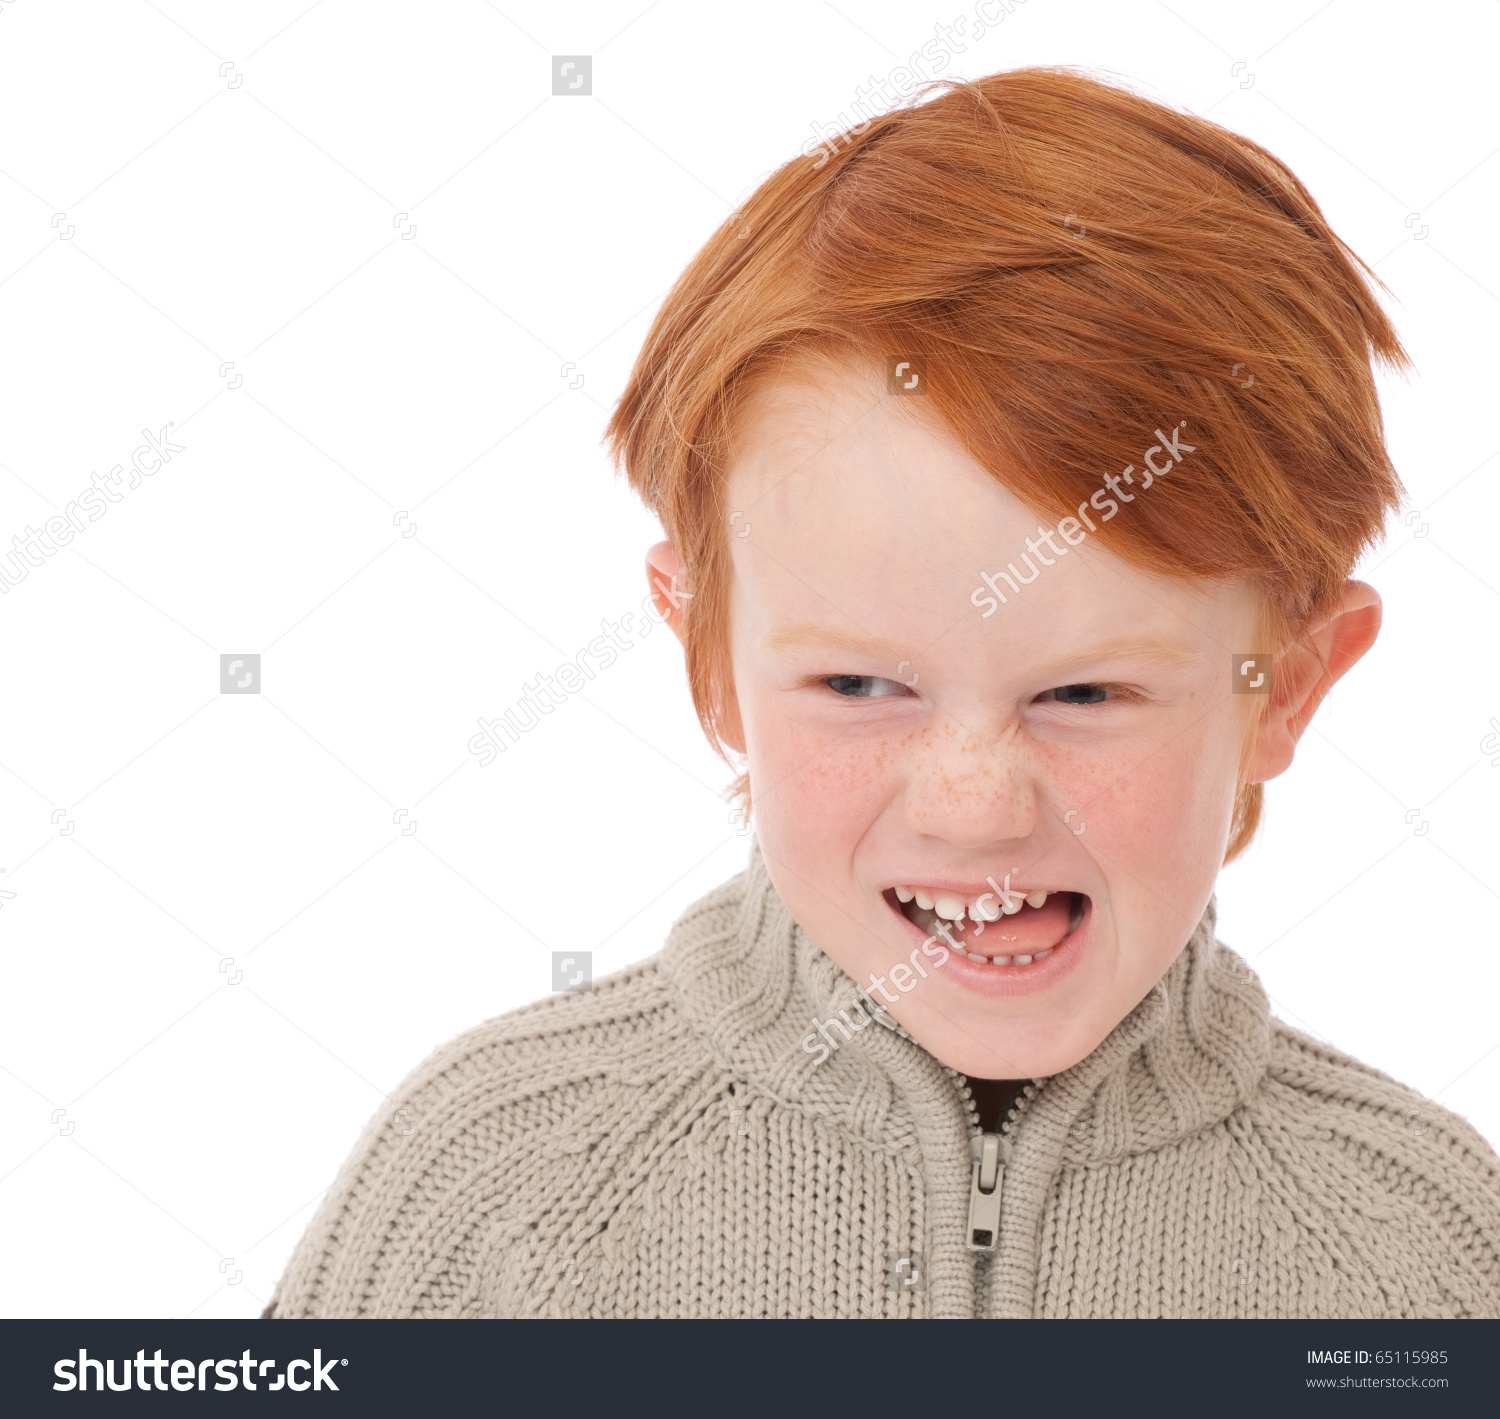 Red Hair Older Boy Kids Clipart.